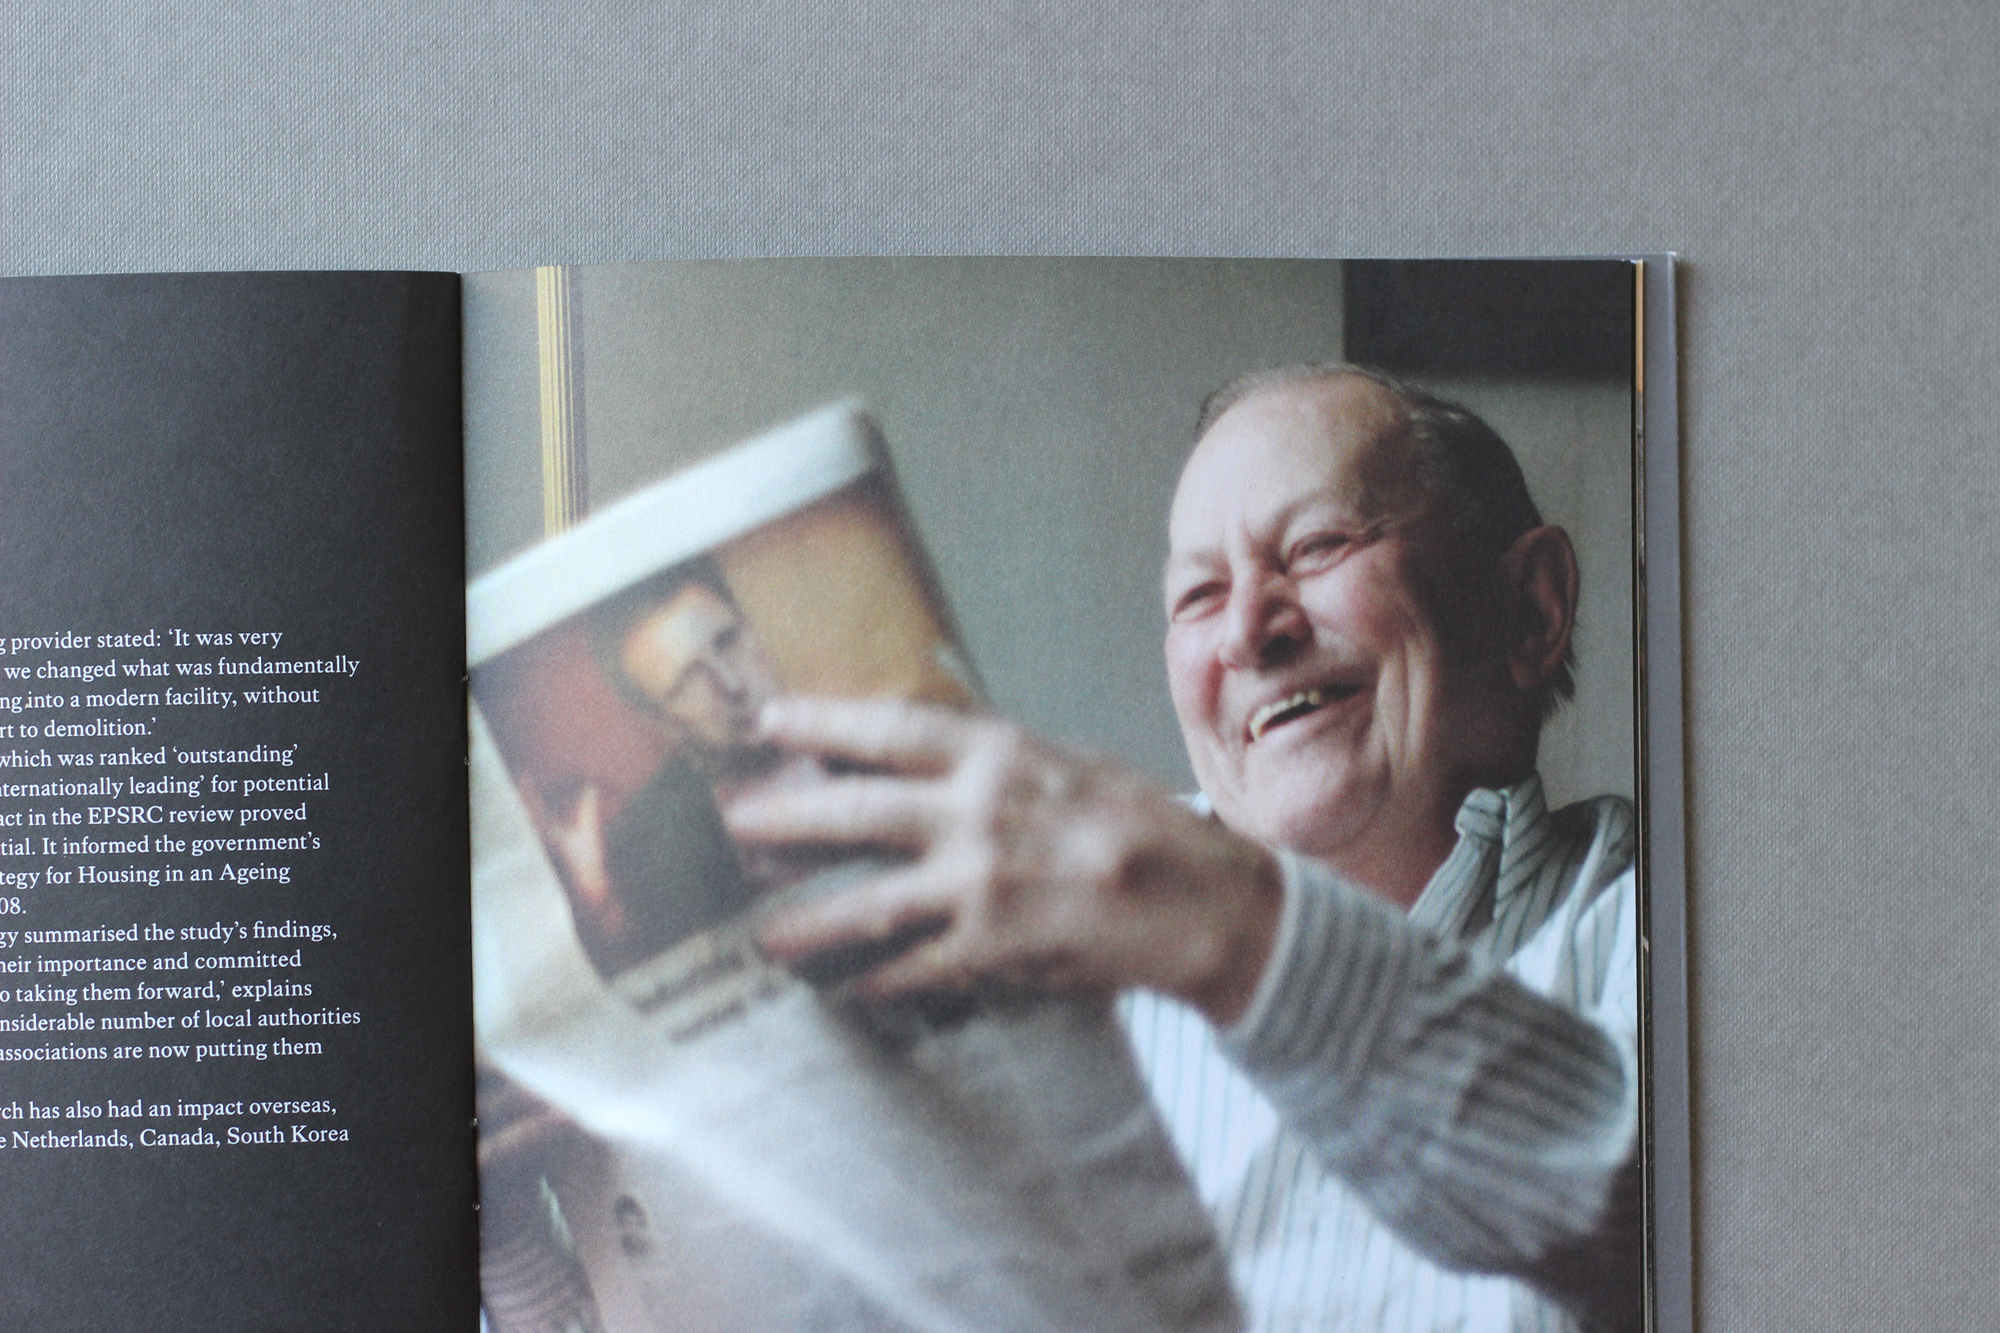 Alan Clarke-Symonds_Graphic design_layout spread for research report_findings_layout design_print detail_02.jpg